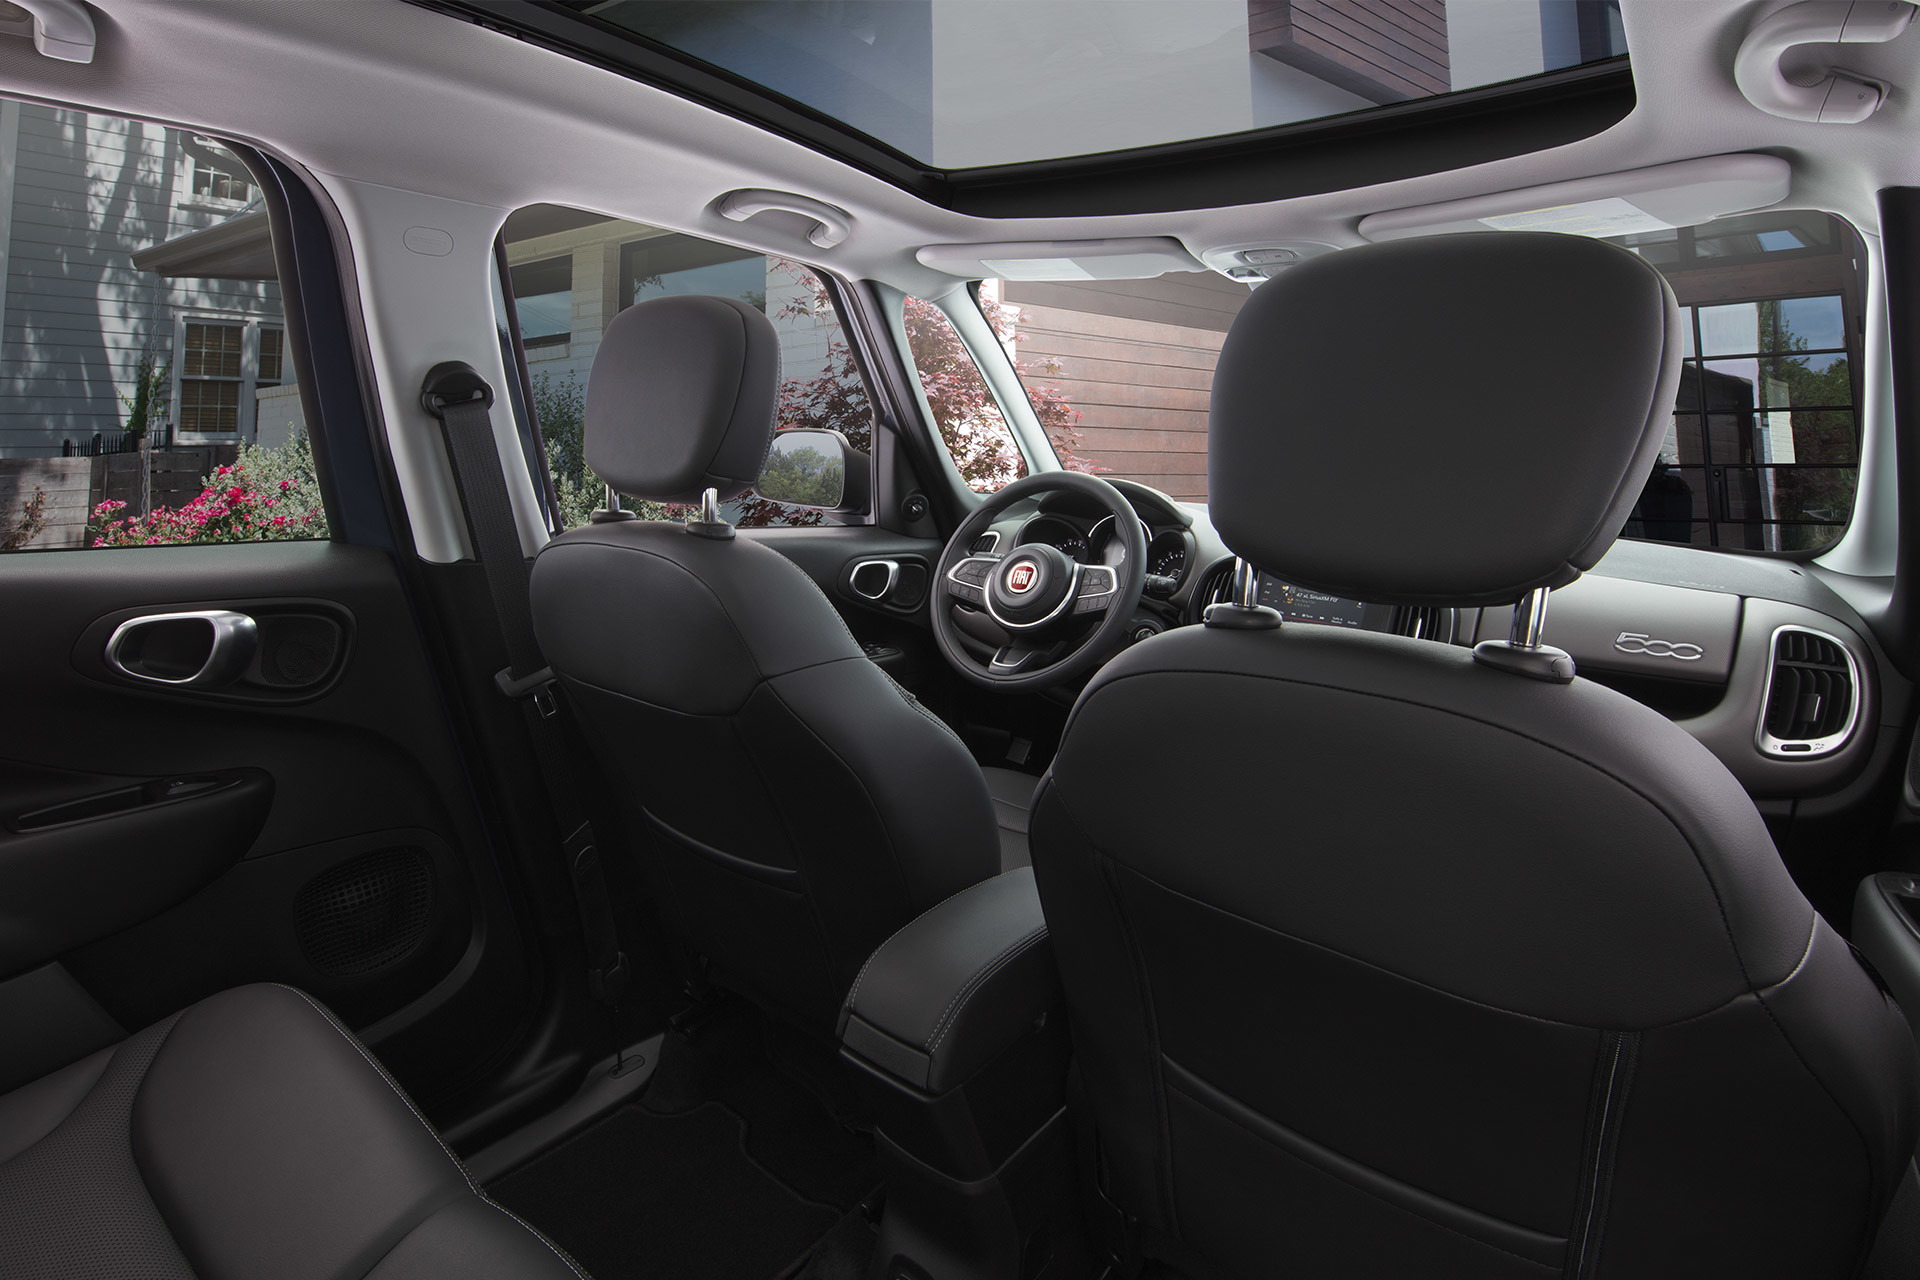 2019 Fiat 500L view of interior from rear seat